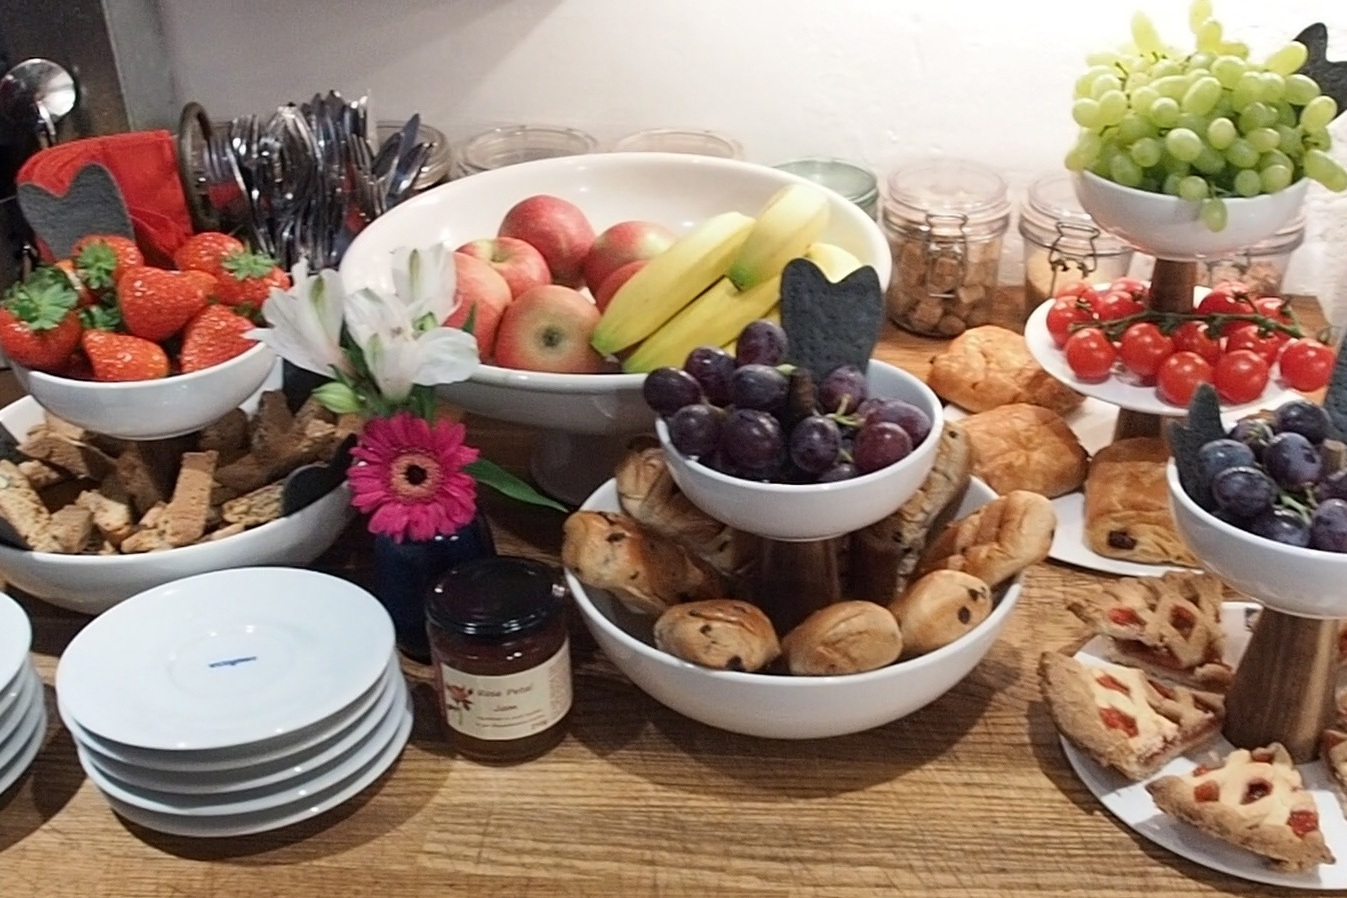 Artisan Breakfast baskets – to include fresh juices, various milks, pastries, local butter, conserves, breads for toast & Italian Biscotti